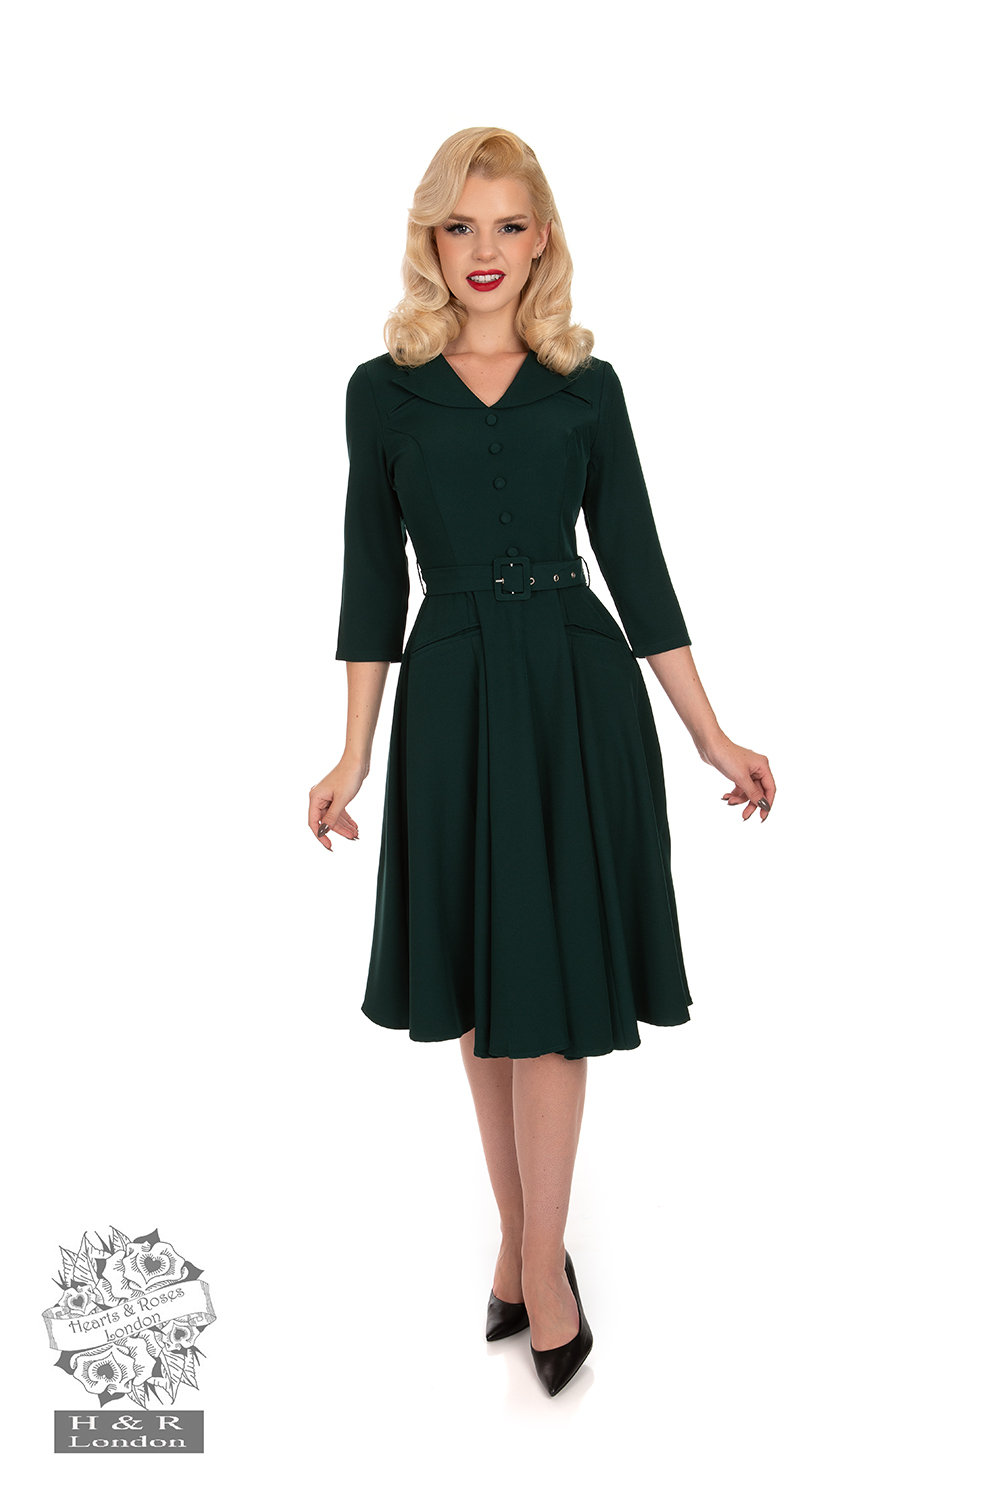 Gabriella Swing Dress in Emerald Green